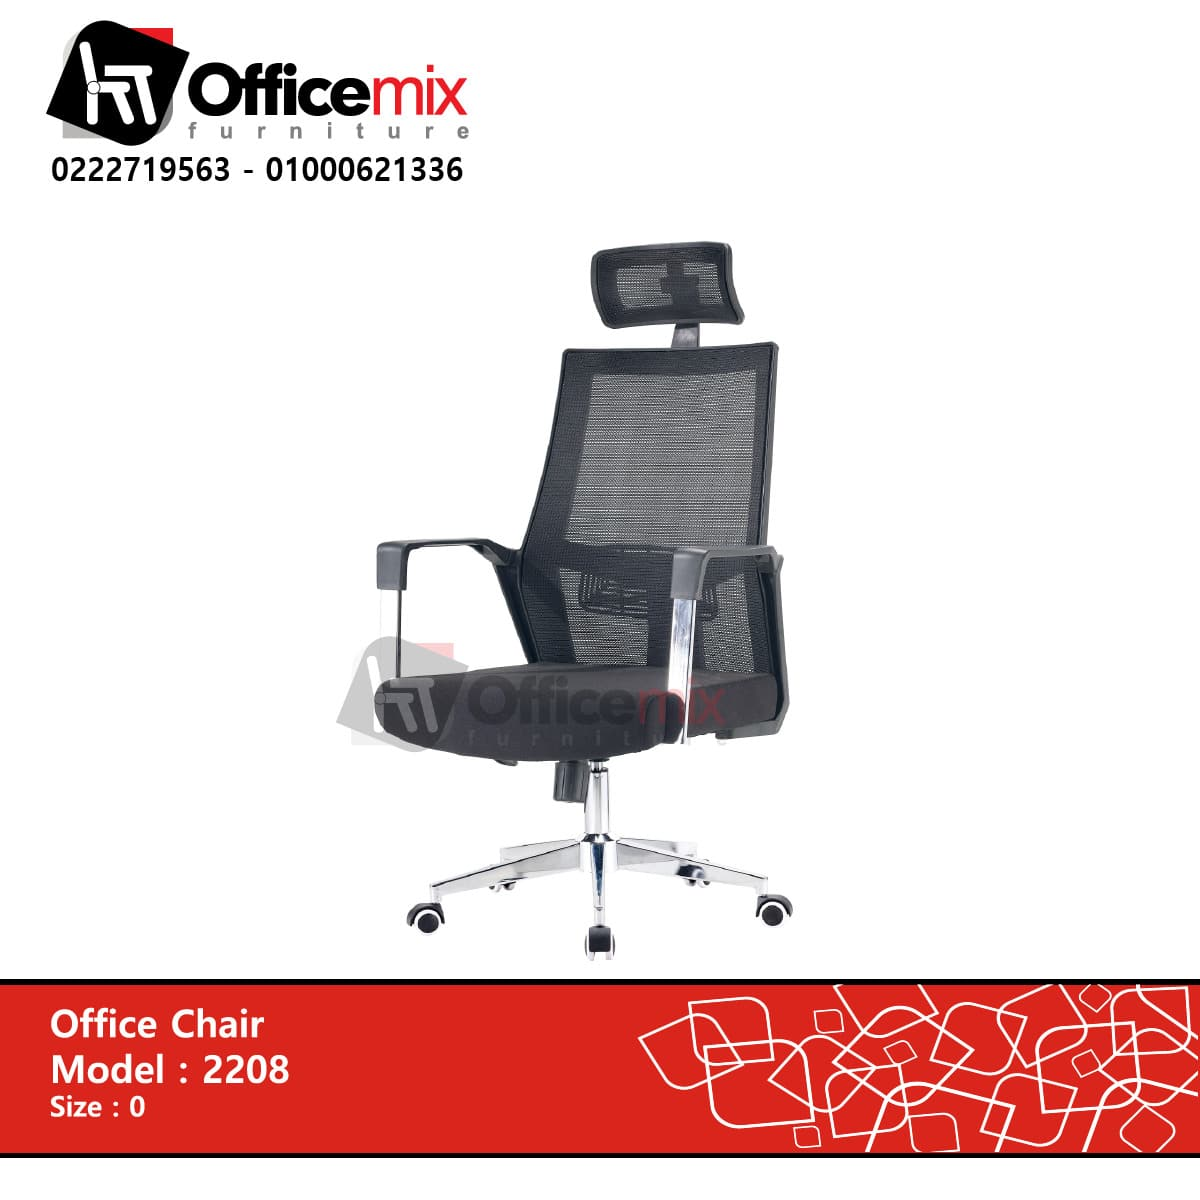 office mix manager chair 2208